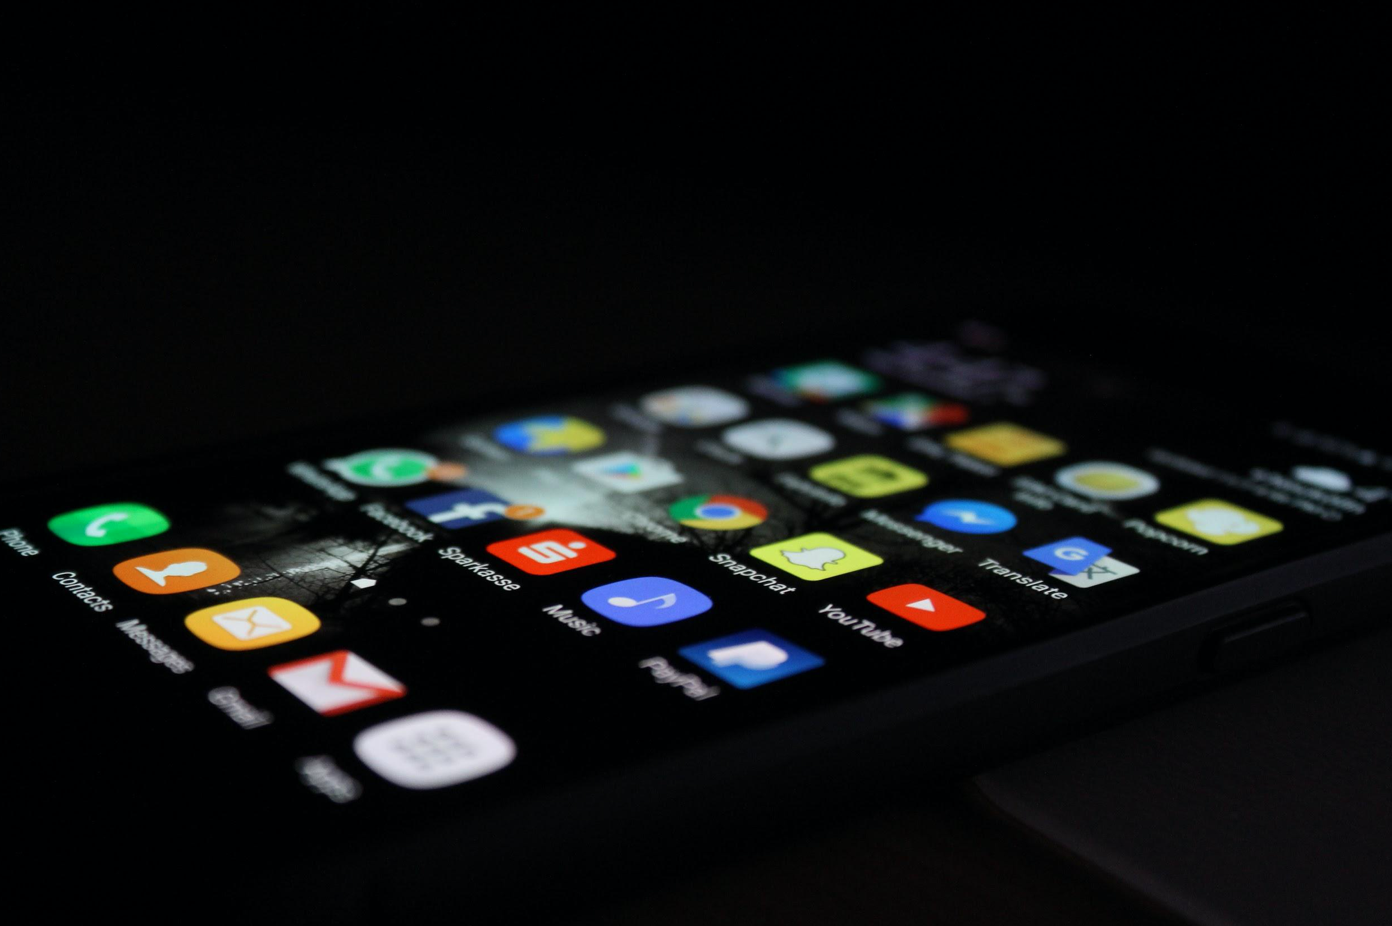 Smartphone with apps showing on screen; image by Rami Al-zayat, via Unsplash.com.